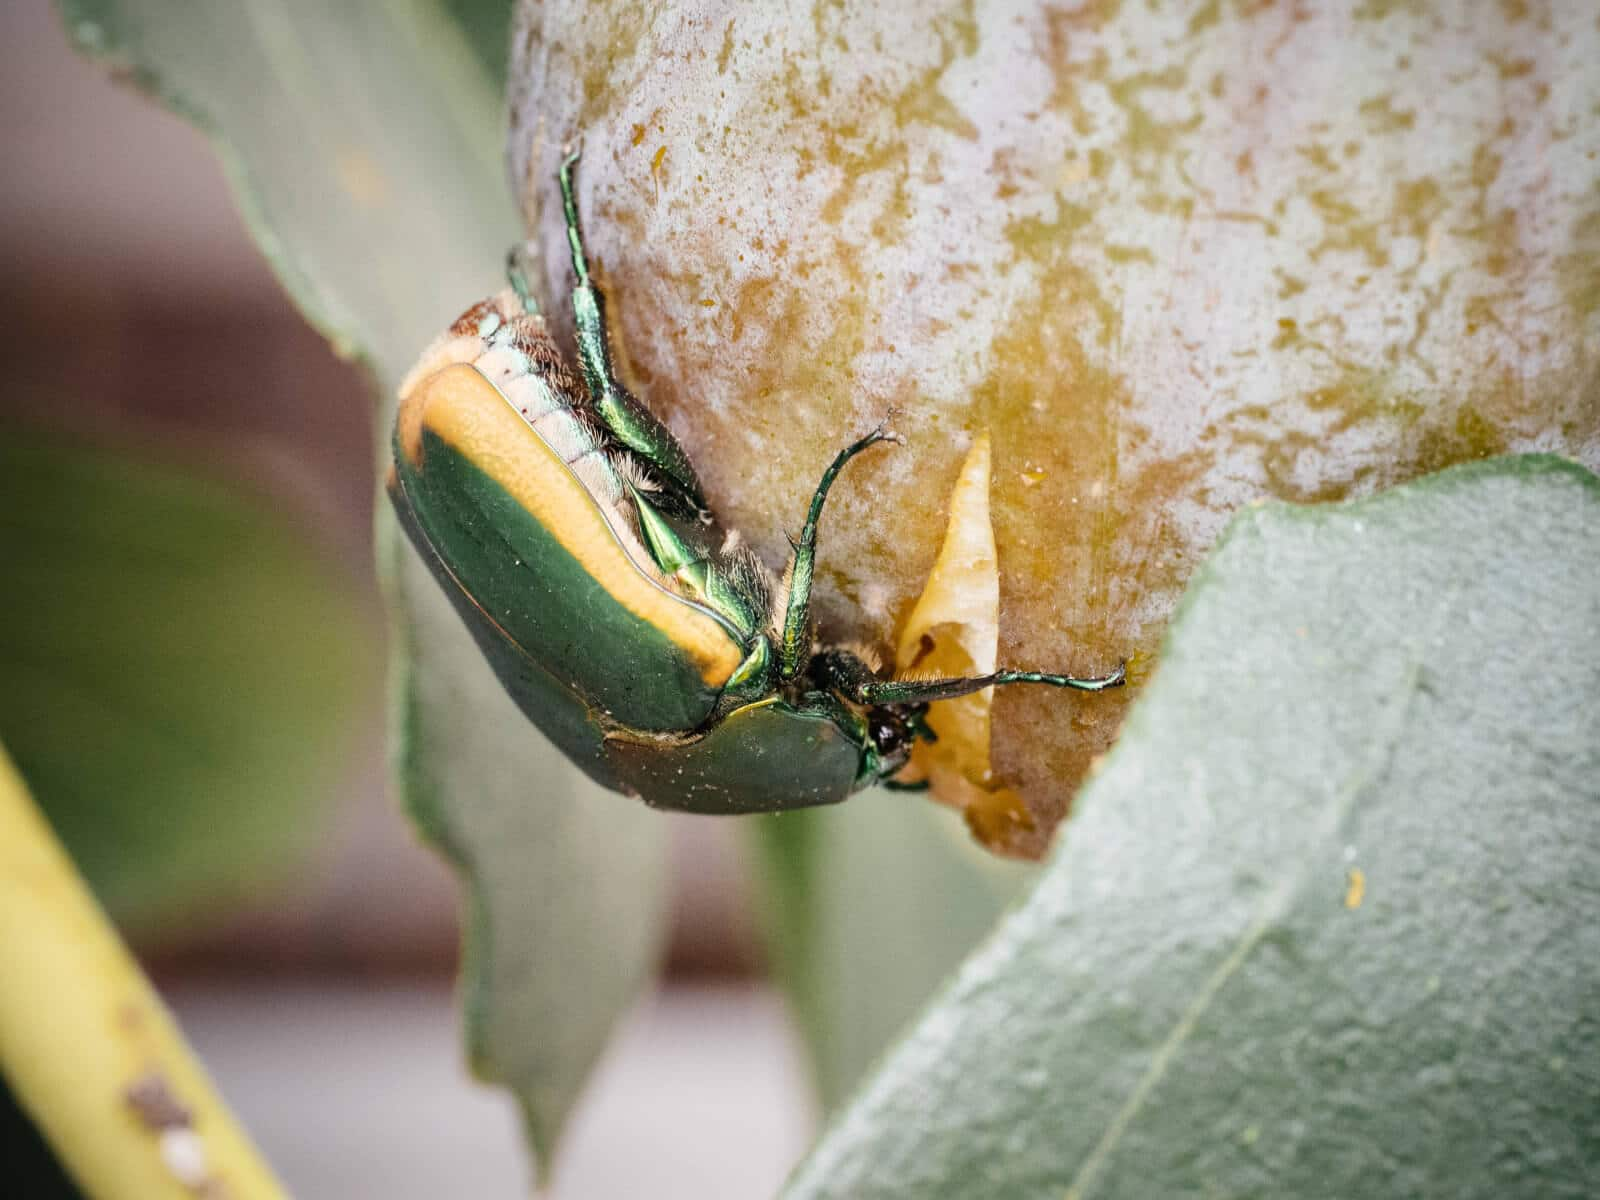 Figeater beetles are attracted to soft, overripe fruit with thin skins